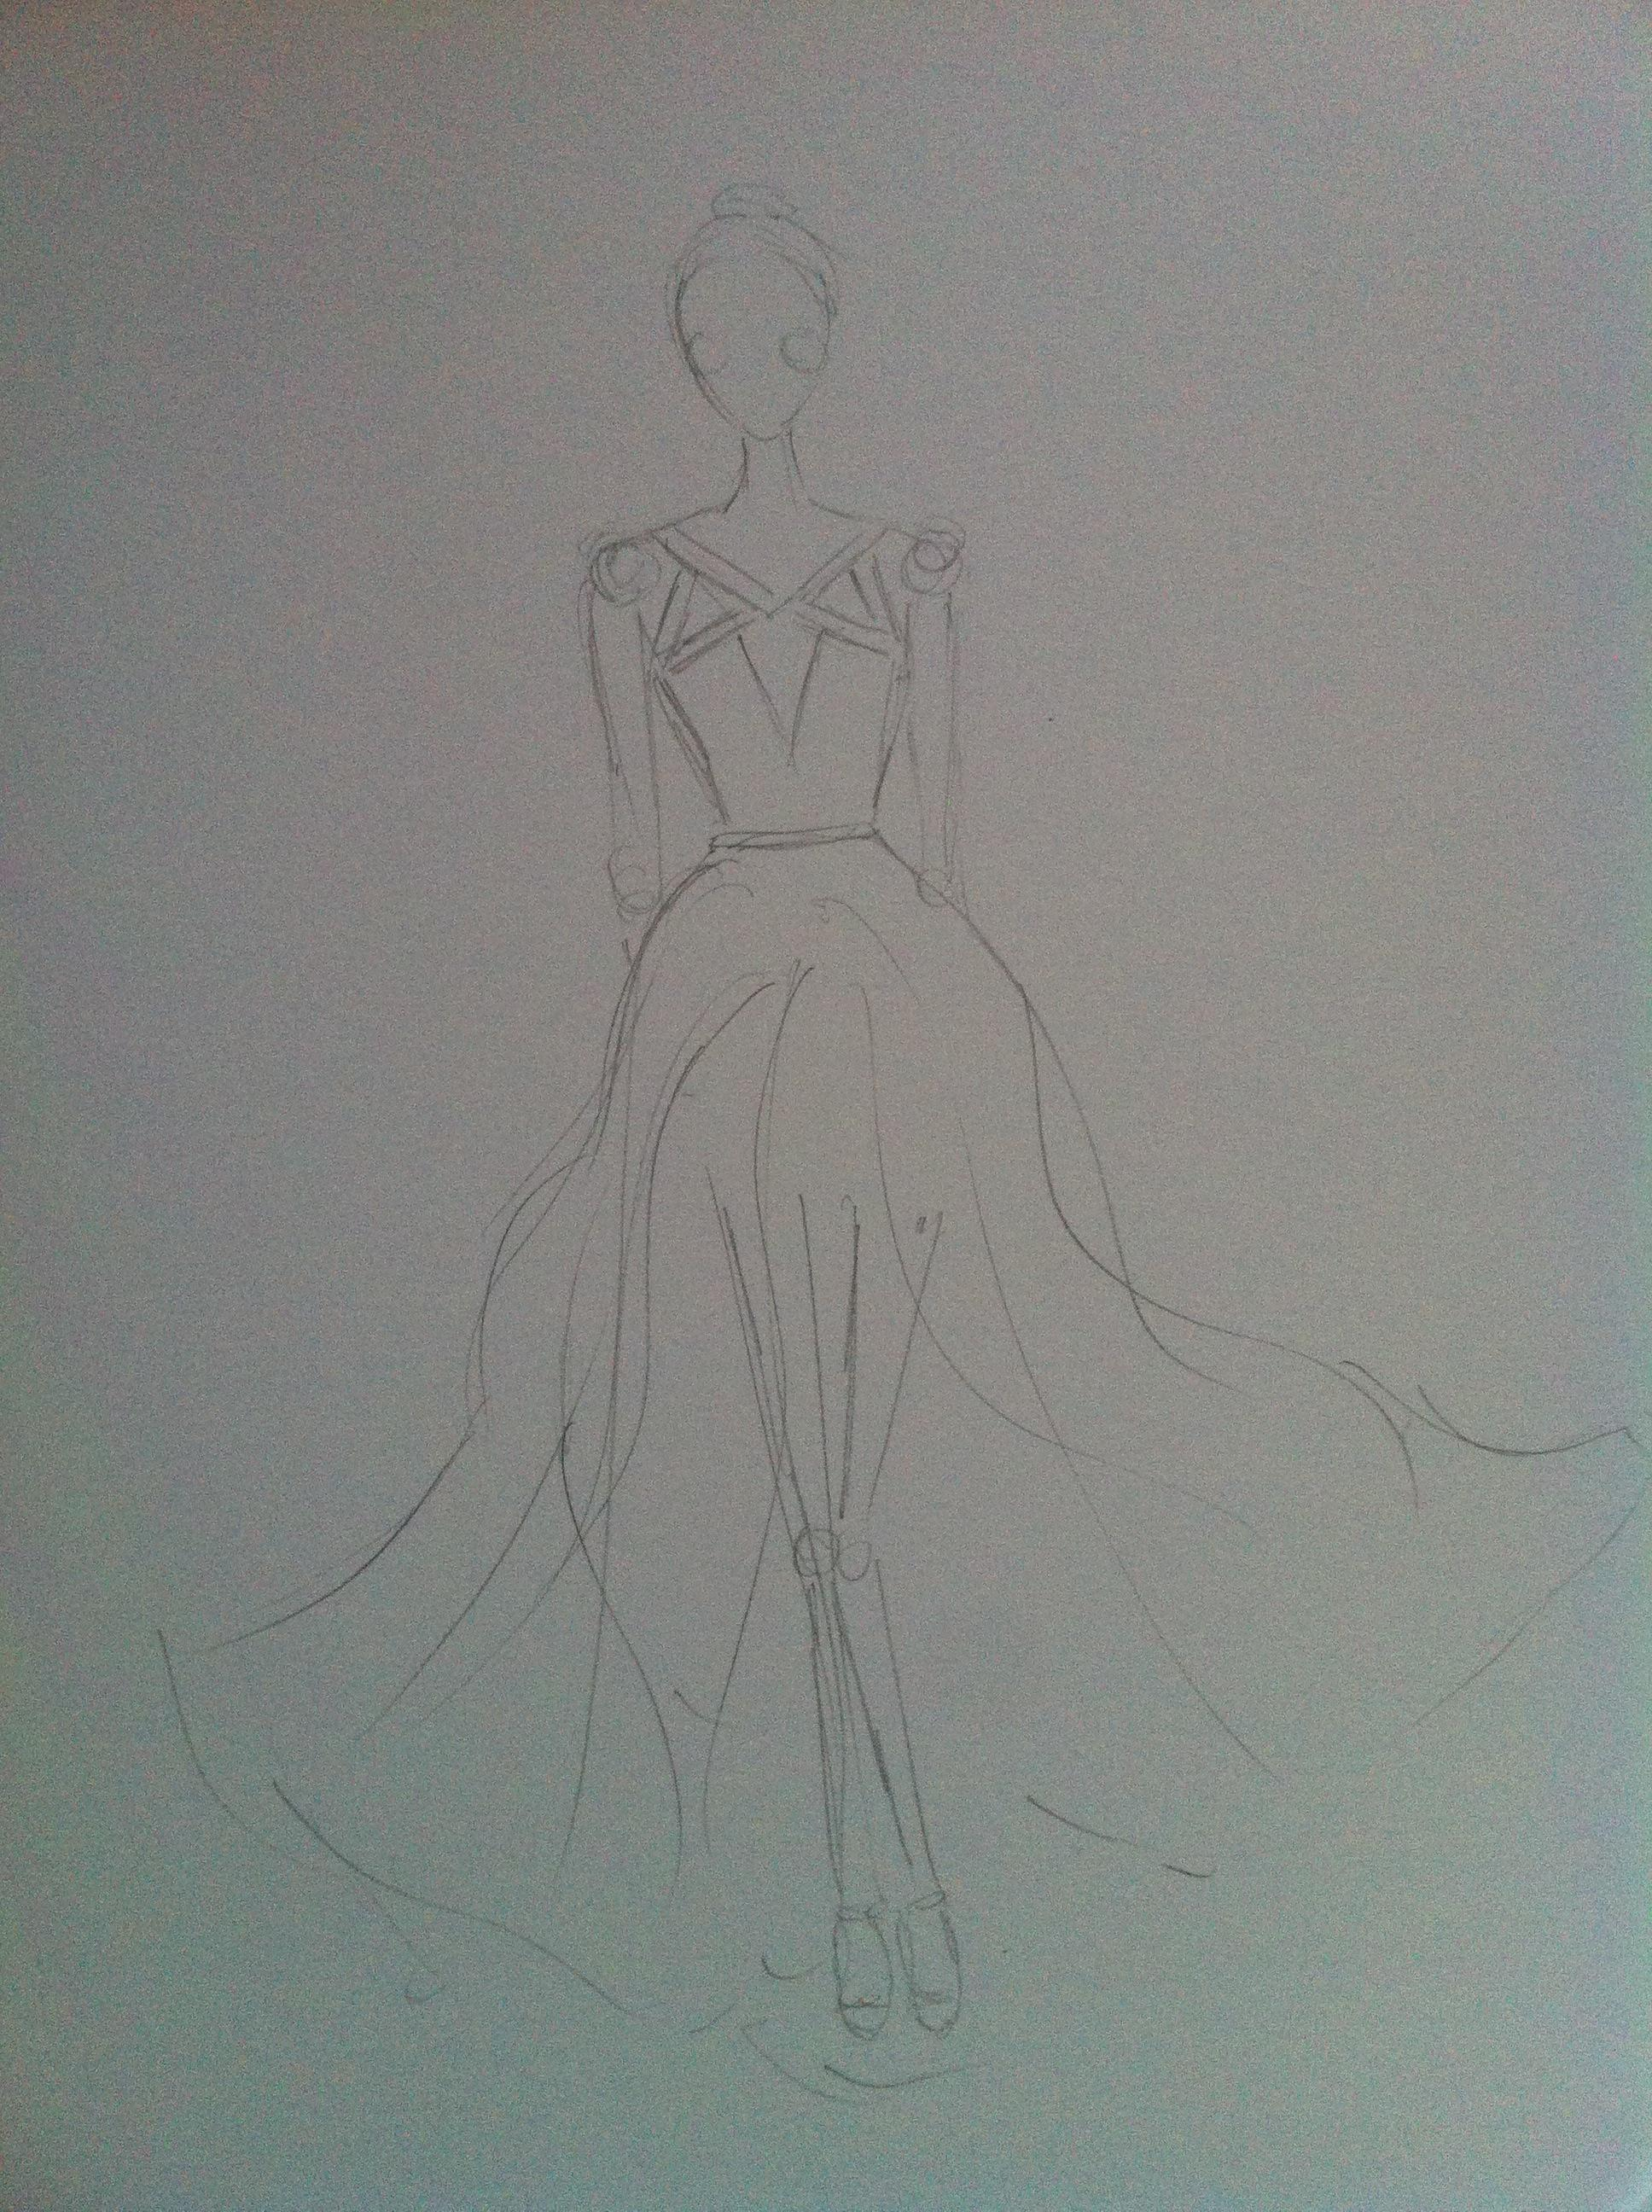 Sketches--Global Romanticism - image 17 - student project